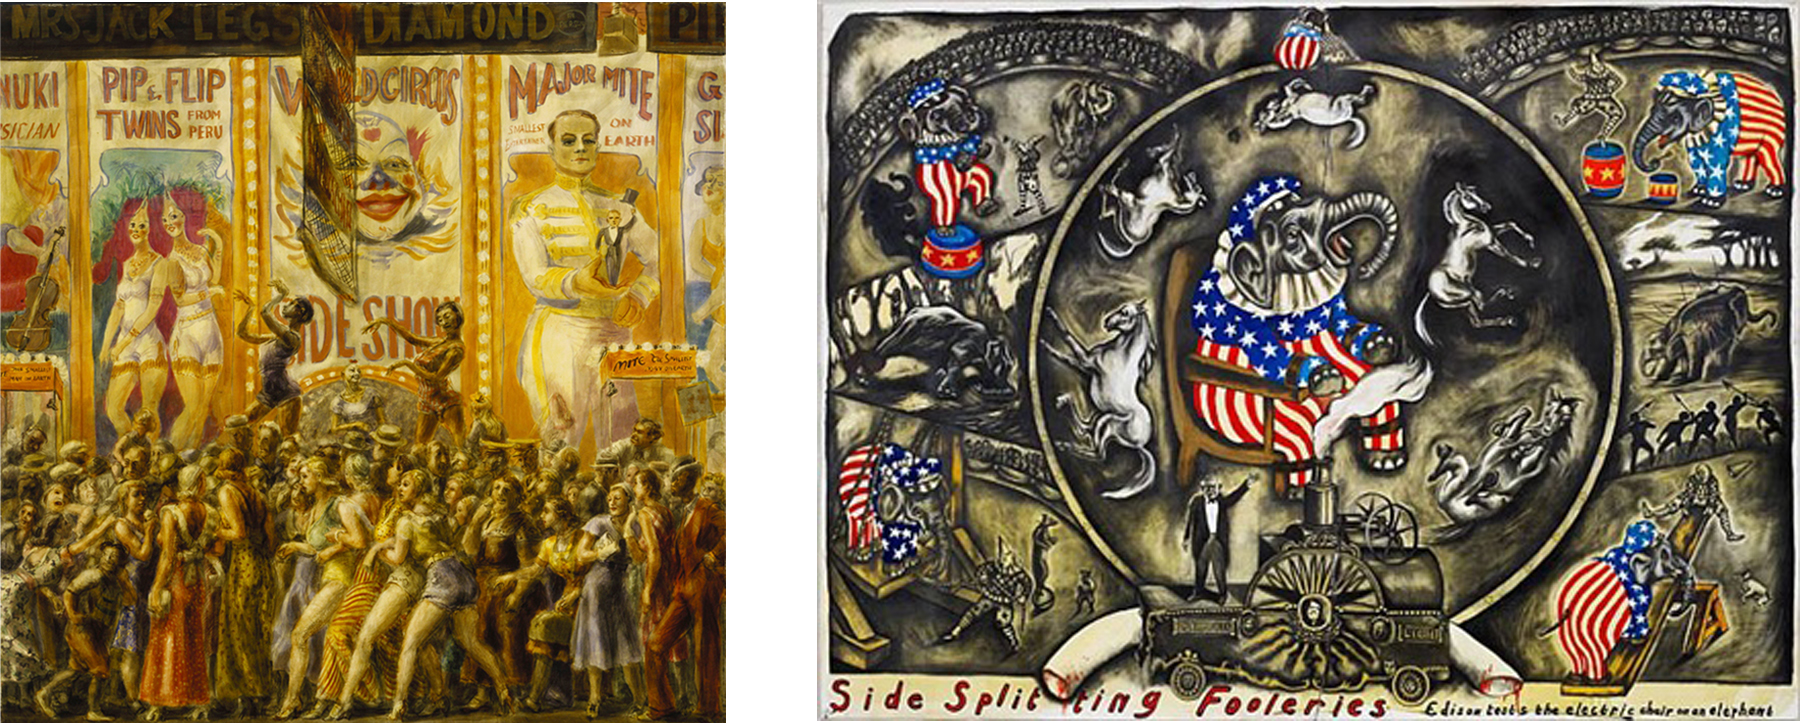 L: Reginald Marsh, Pip and Flip, 1932. Tempera on paper mounted on canvas, 48 ¼ x 48 ¼ in. Terra Foundation for American Art, Chicago. R: Sue Coe, Side Splitting Fooleries: Edison Tests the Electric Chair on an Elephant, 2007, graphite, gouache, and watercolor on board, 40 x 54 ½ in. The Galerie St. Etienne, New York